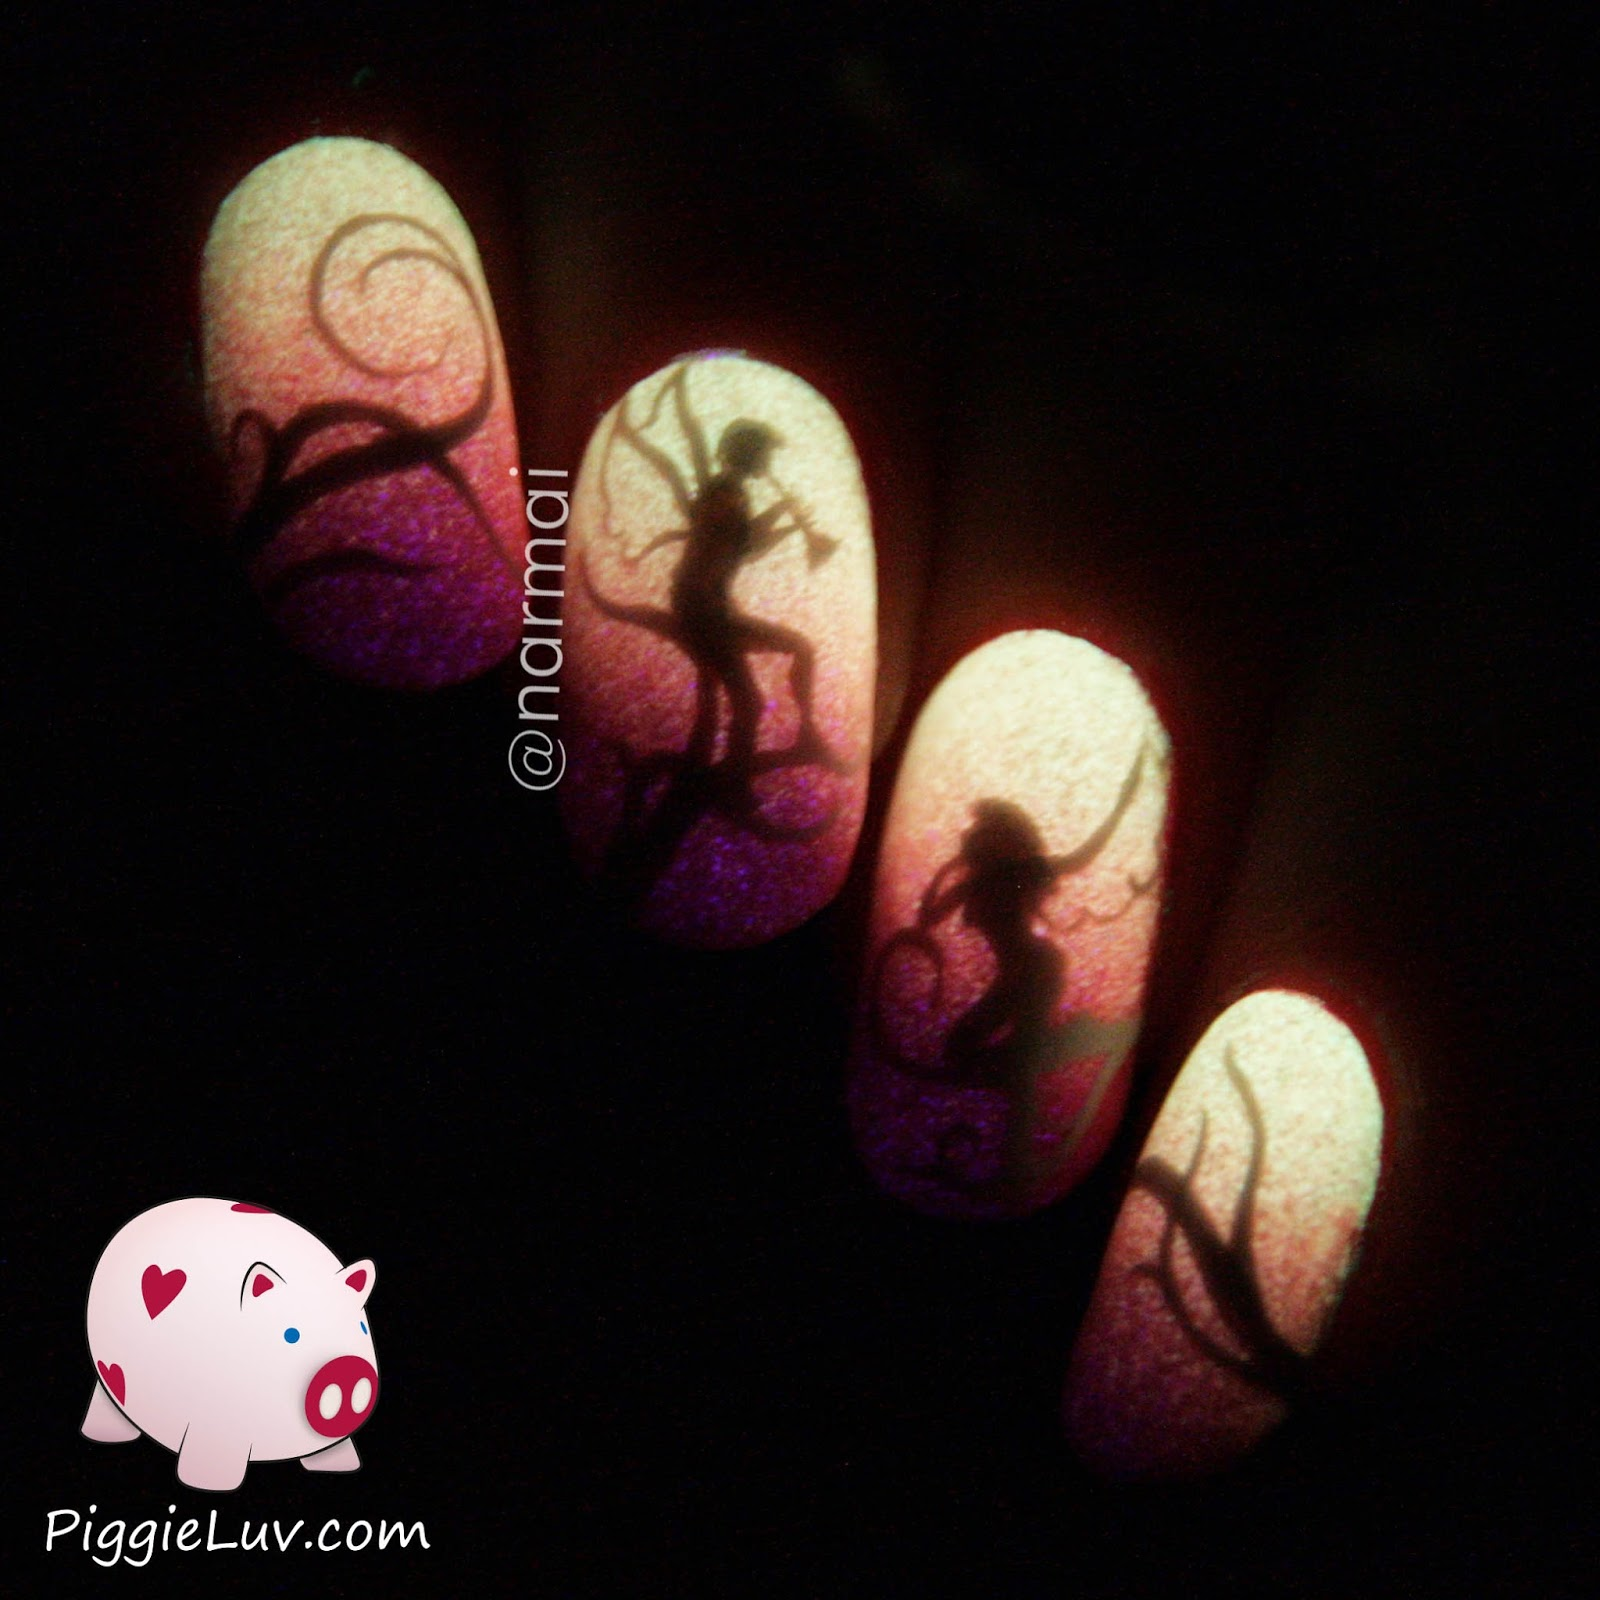 Piggieluv Freehand Stairway To Heaven Nail Art: PiggieLuv: Serum No. 5 Infrared: Swatches, Review And Nail